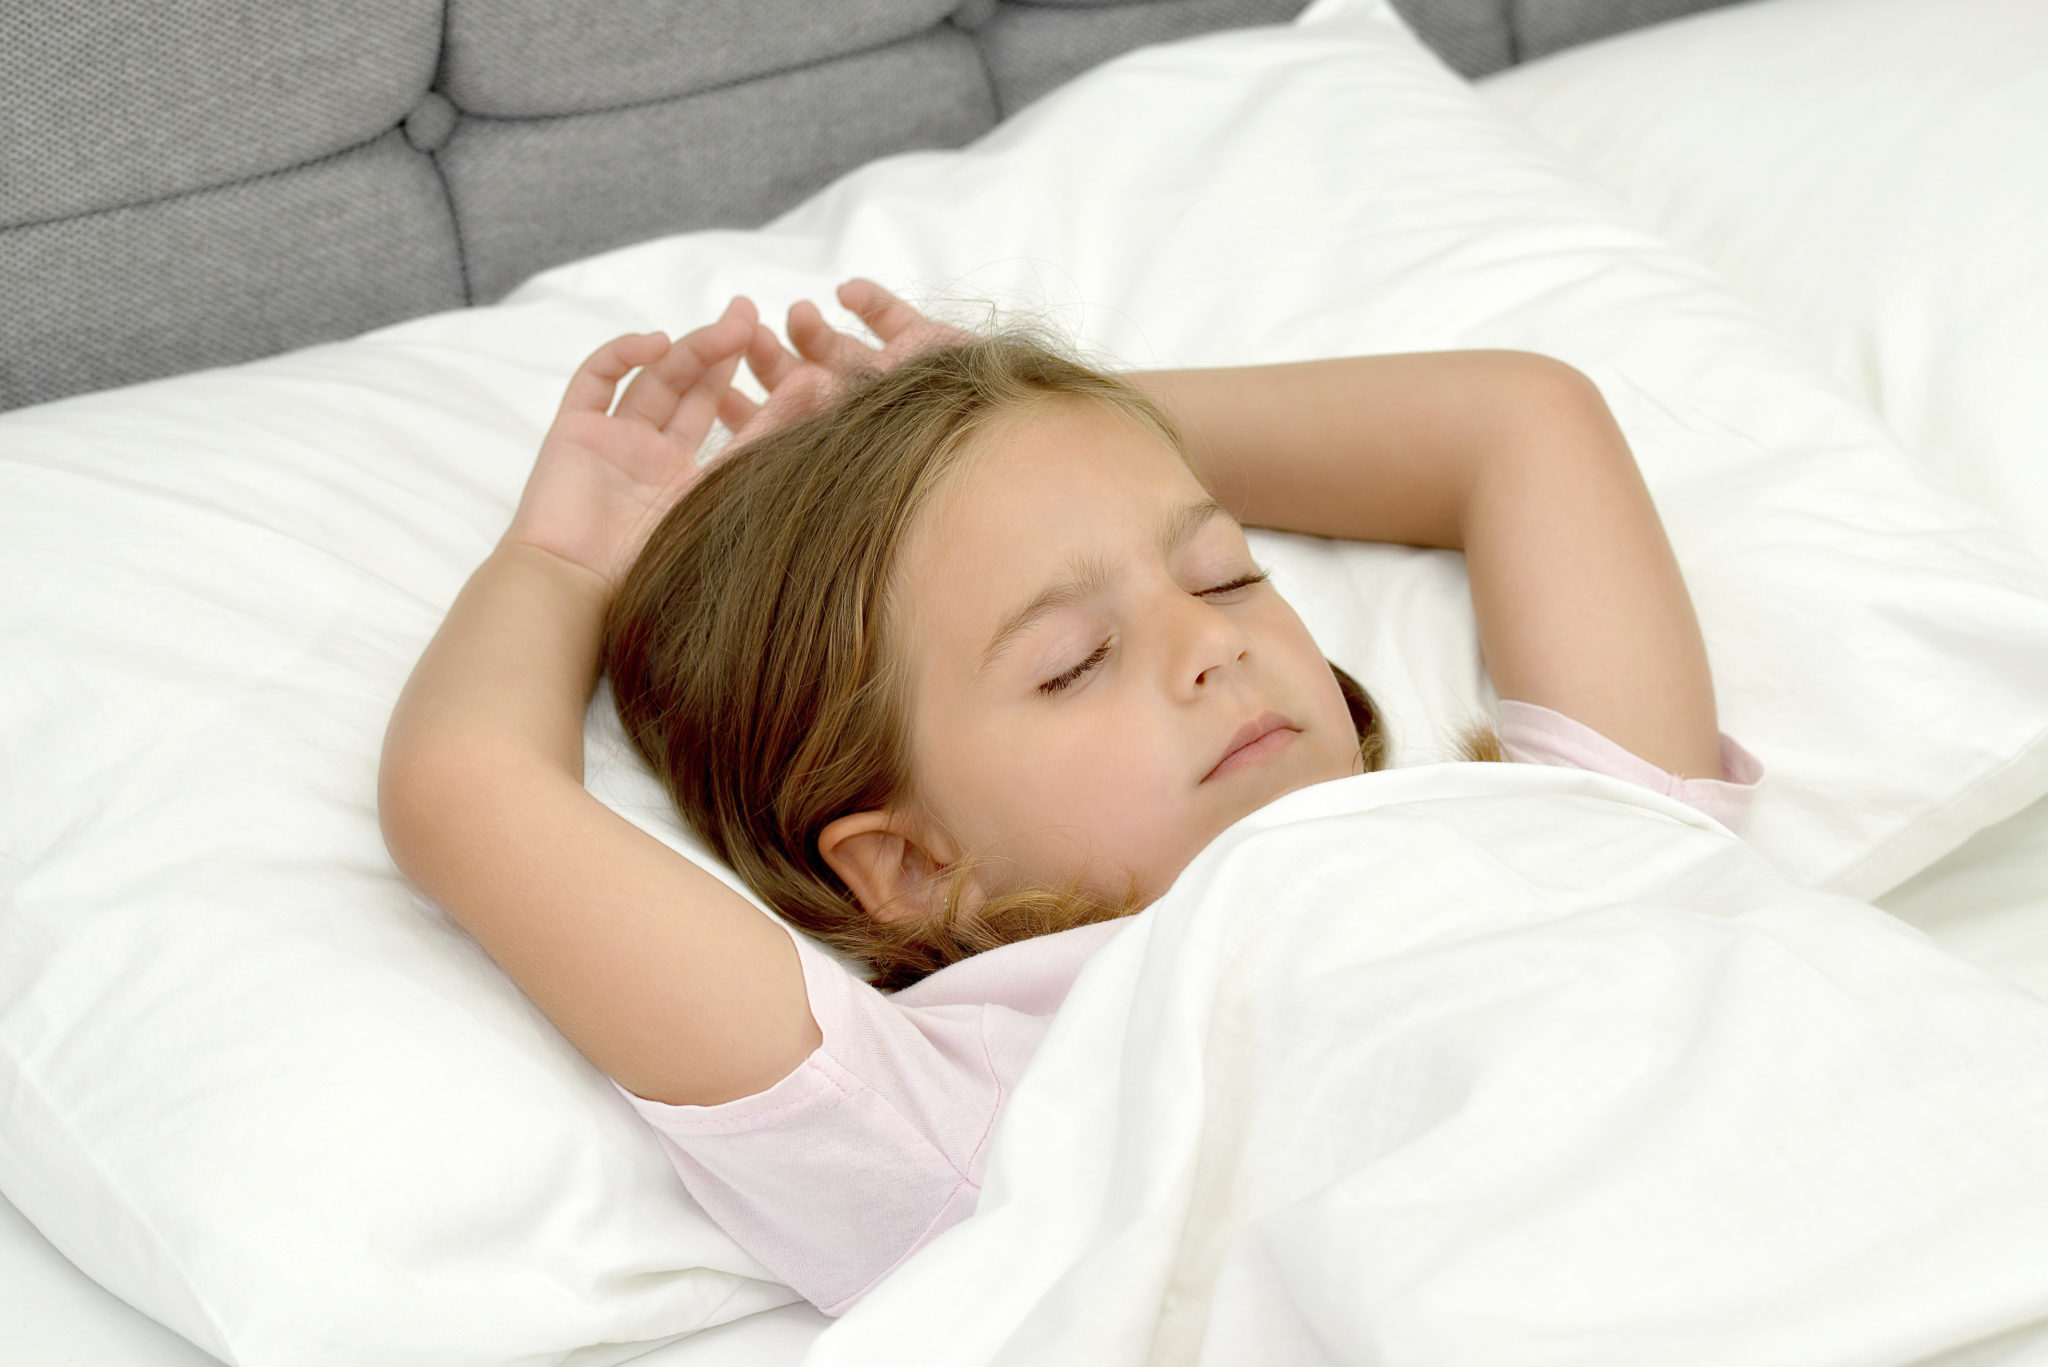 Myths About Kids and Sleep